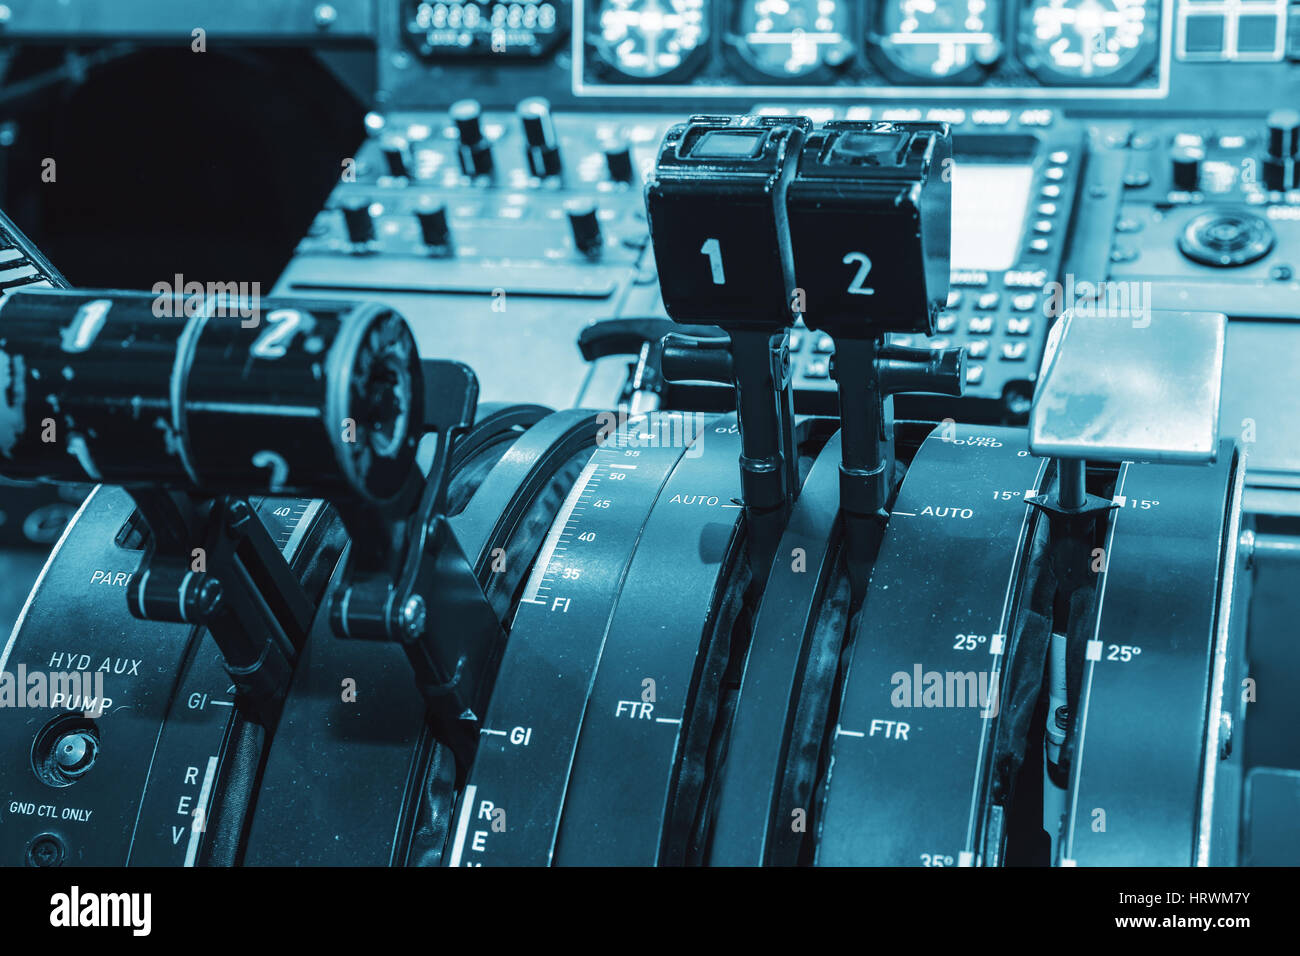 Thrust Levers Stock Photos & Thrust Levers Stock Images - Alamy